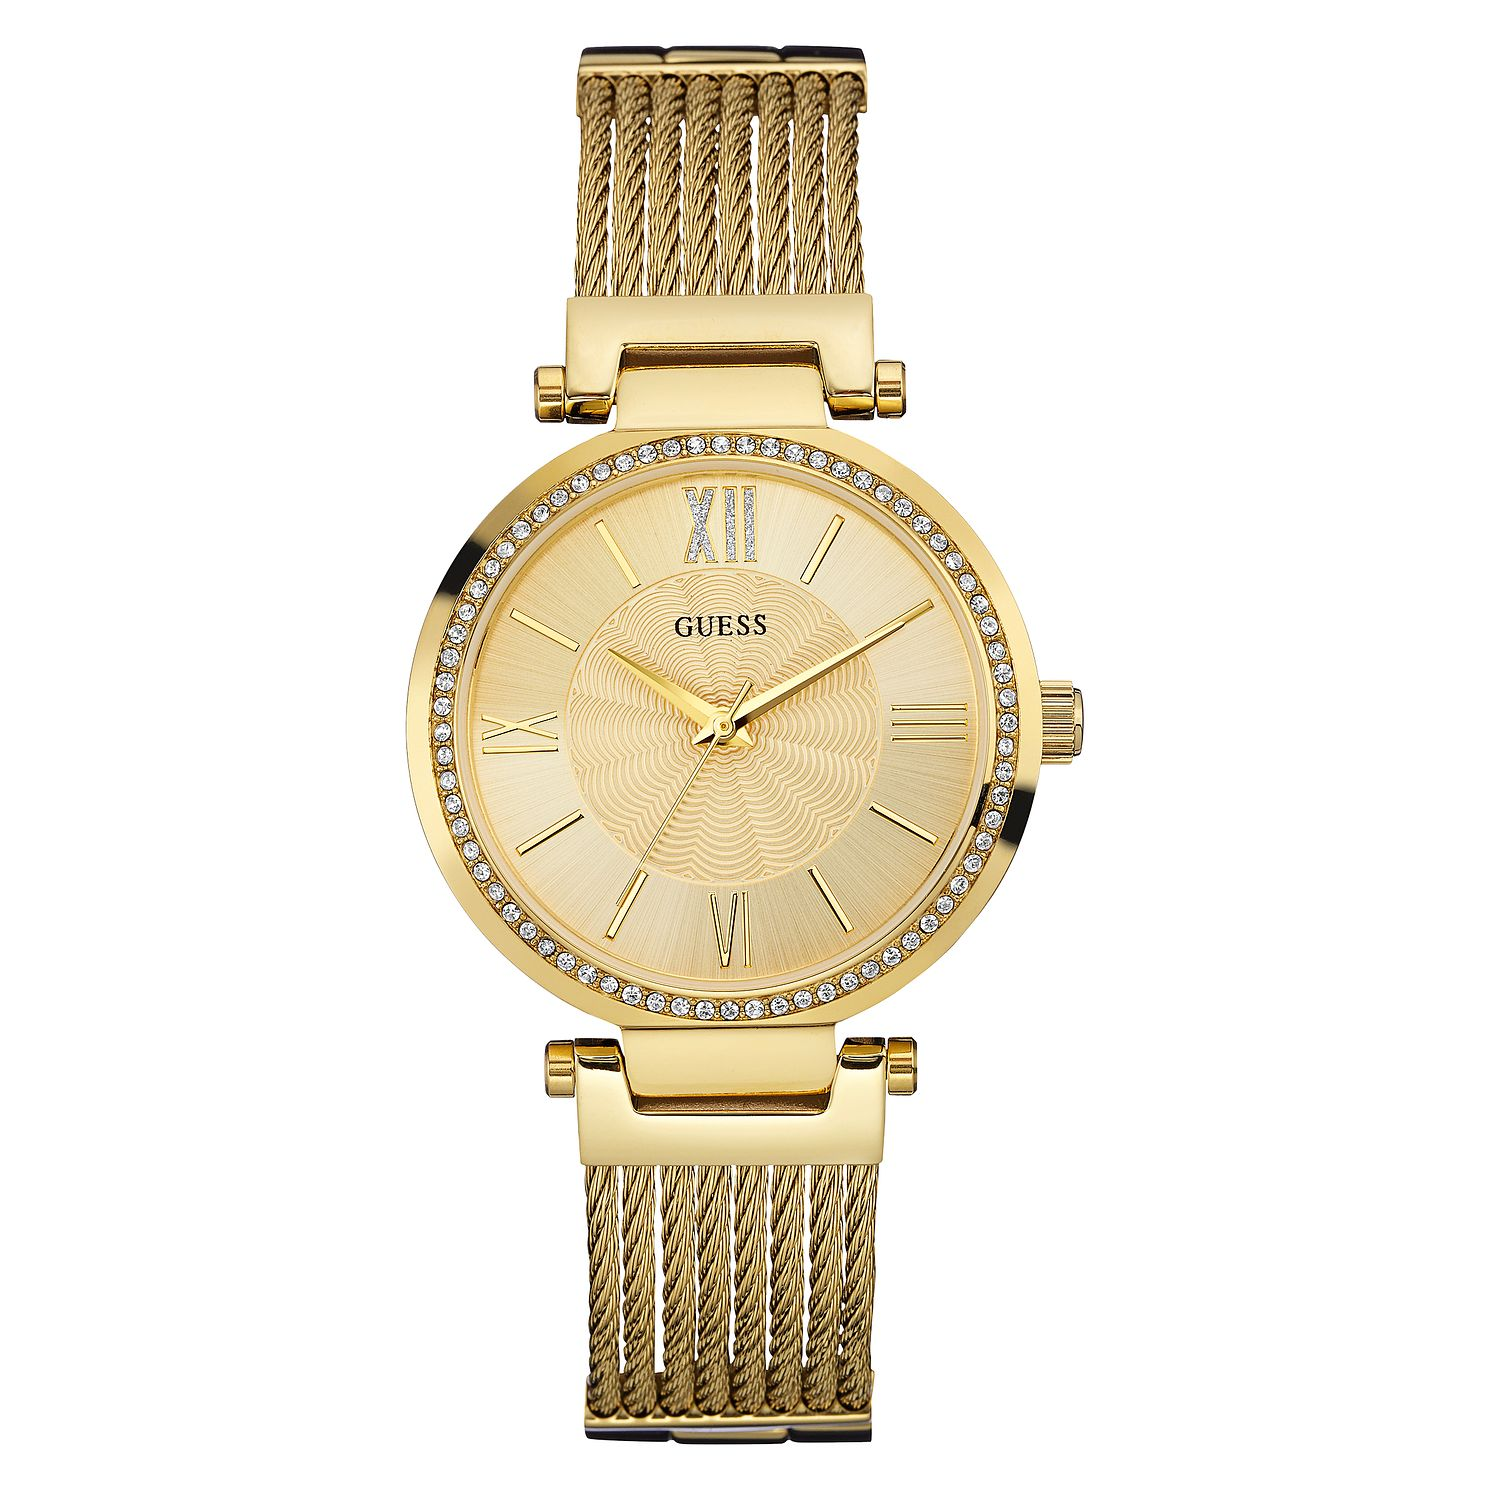 Guess Ladies' Yellow Gold Tone Rope Style Bracelet Watch - Product number 3597822